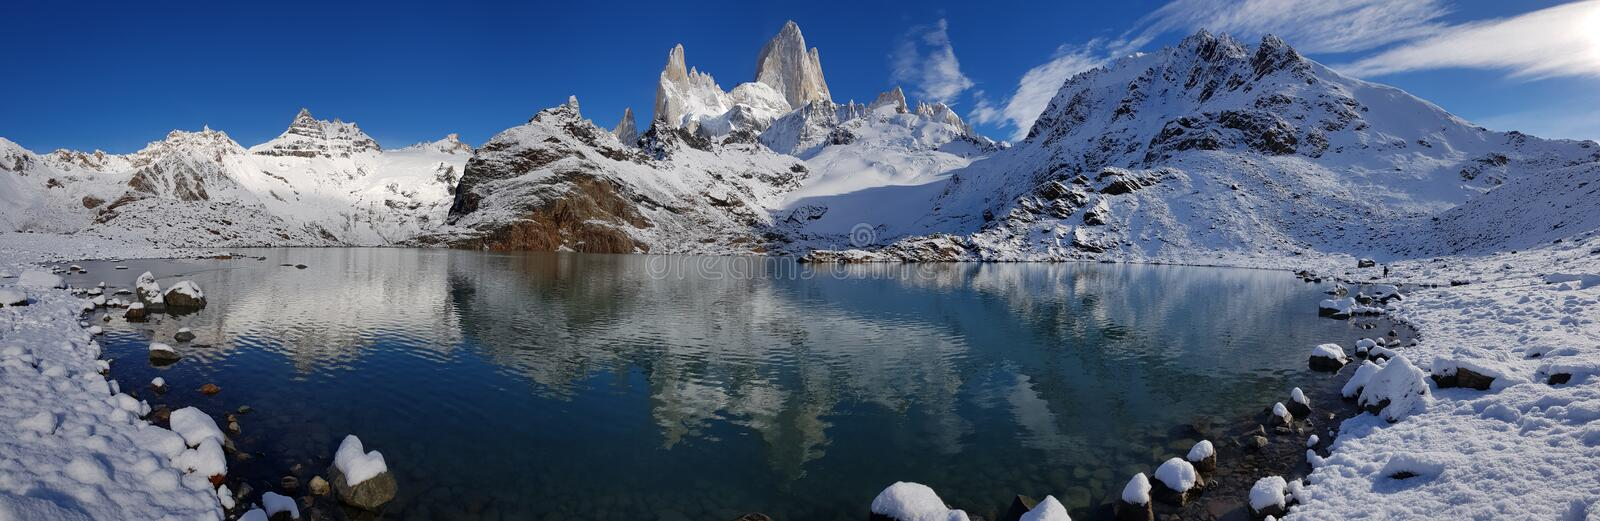 Fitz Roy mountain near El Chalten, in the Southern Patagonia, on the border between Argentina and Chile. Winter view stock image